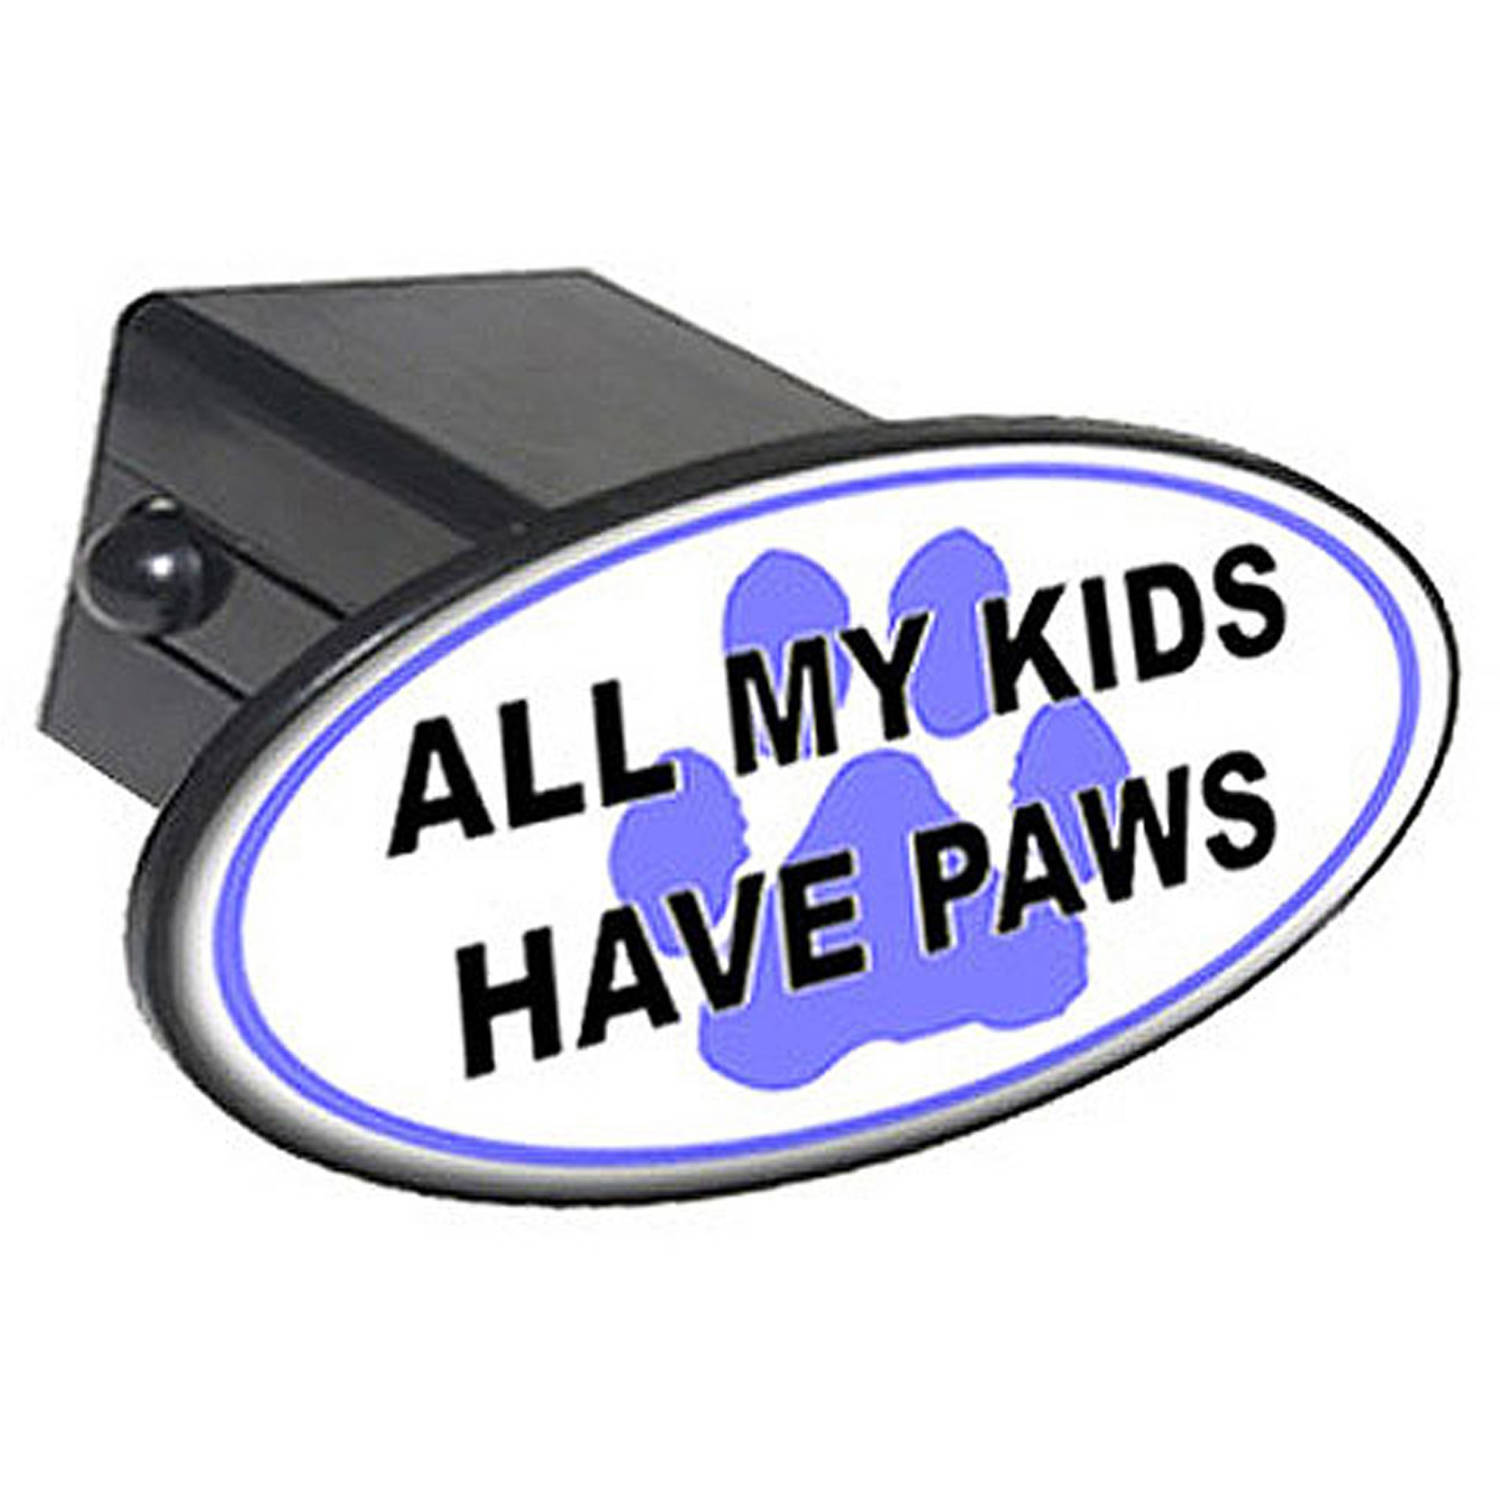 "All My Kids Have Paws, Blue 2"" Oval Tow Trailer Hitch Cover Plug Insert"